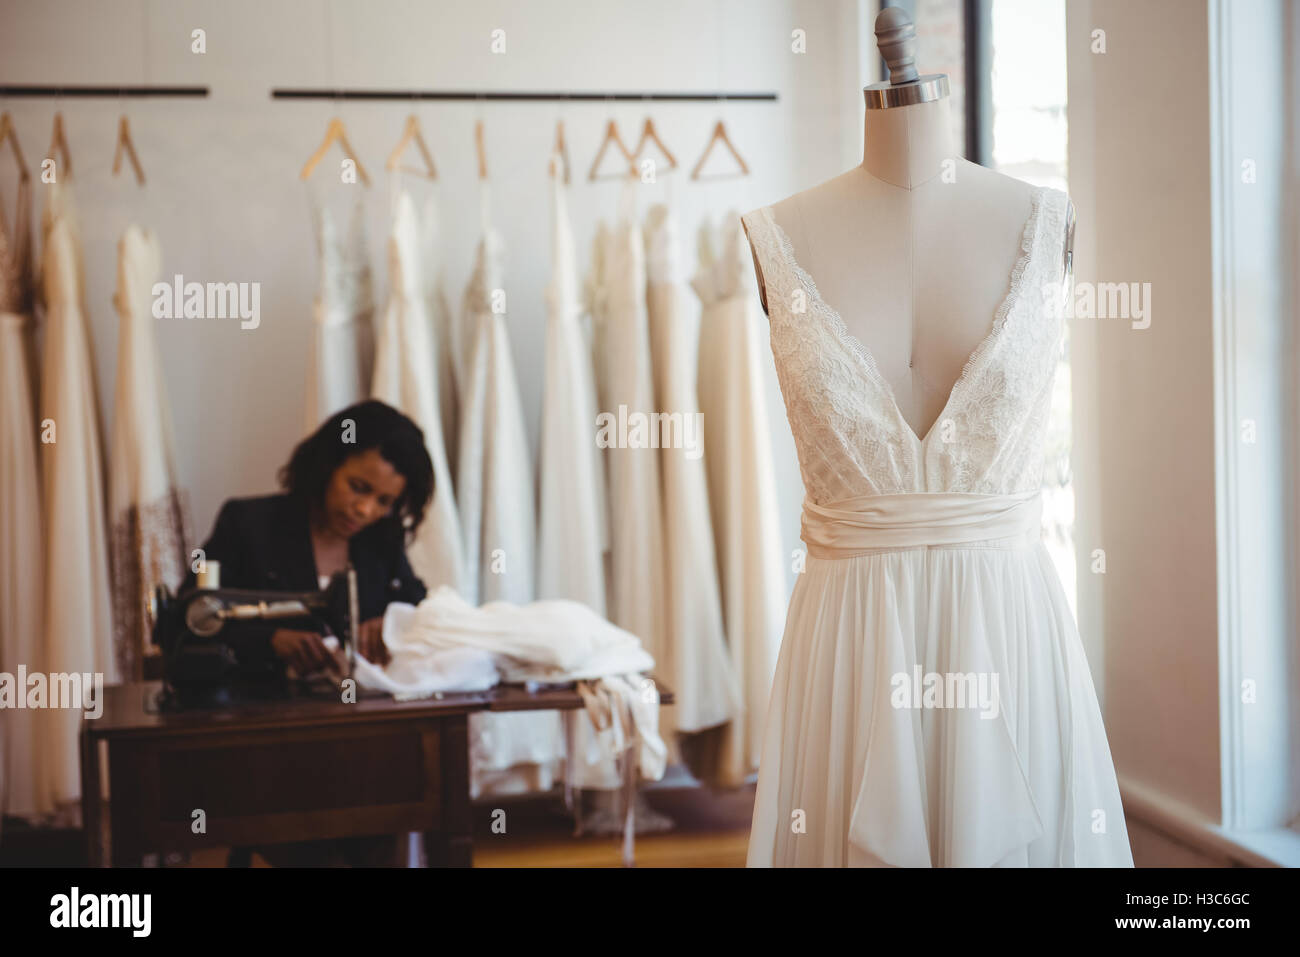 Couture hanging on mannequin - Stock Image